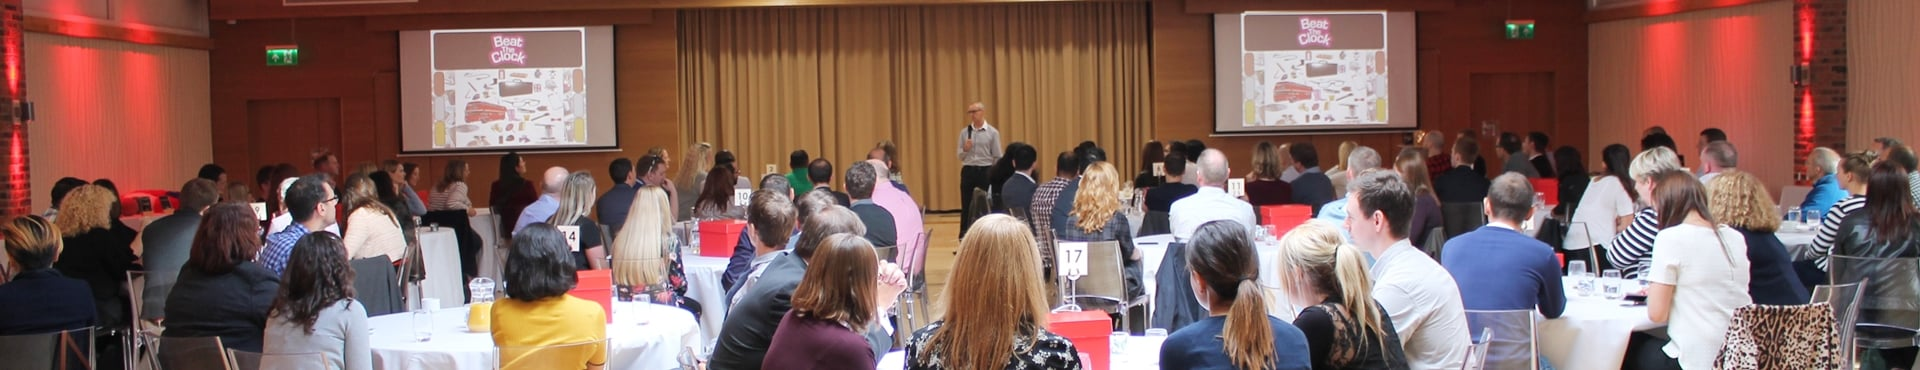 A large group of people at a corporate away day, all litening to a speaker at the front of a confenrece room.